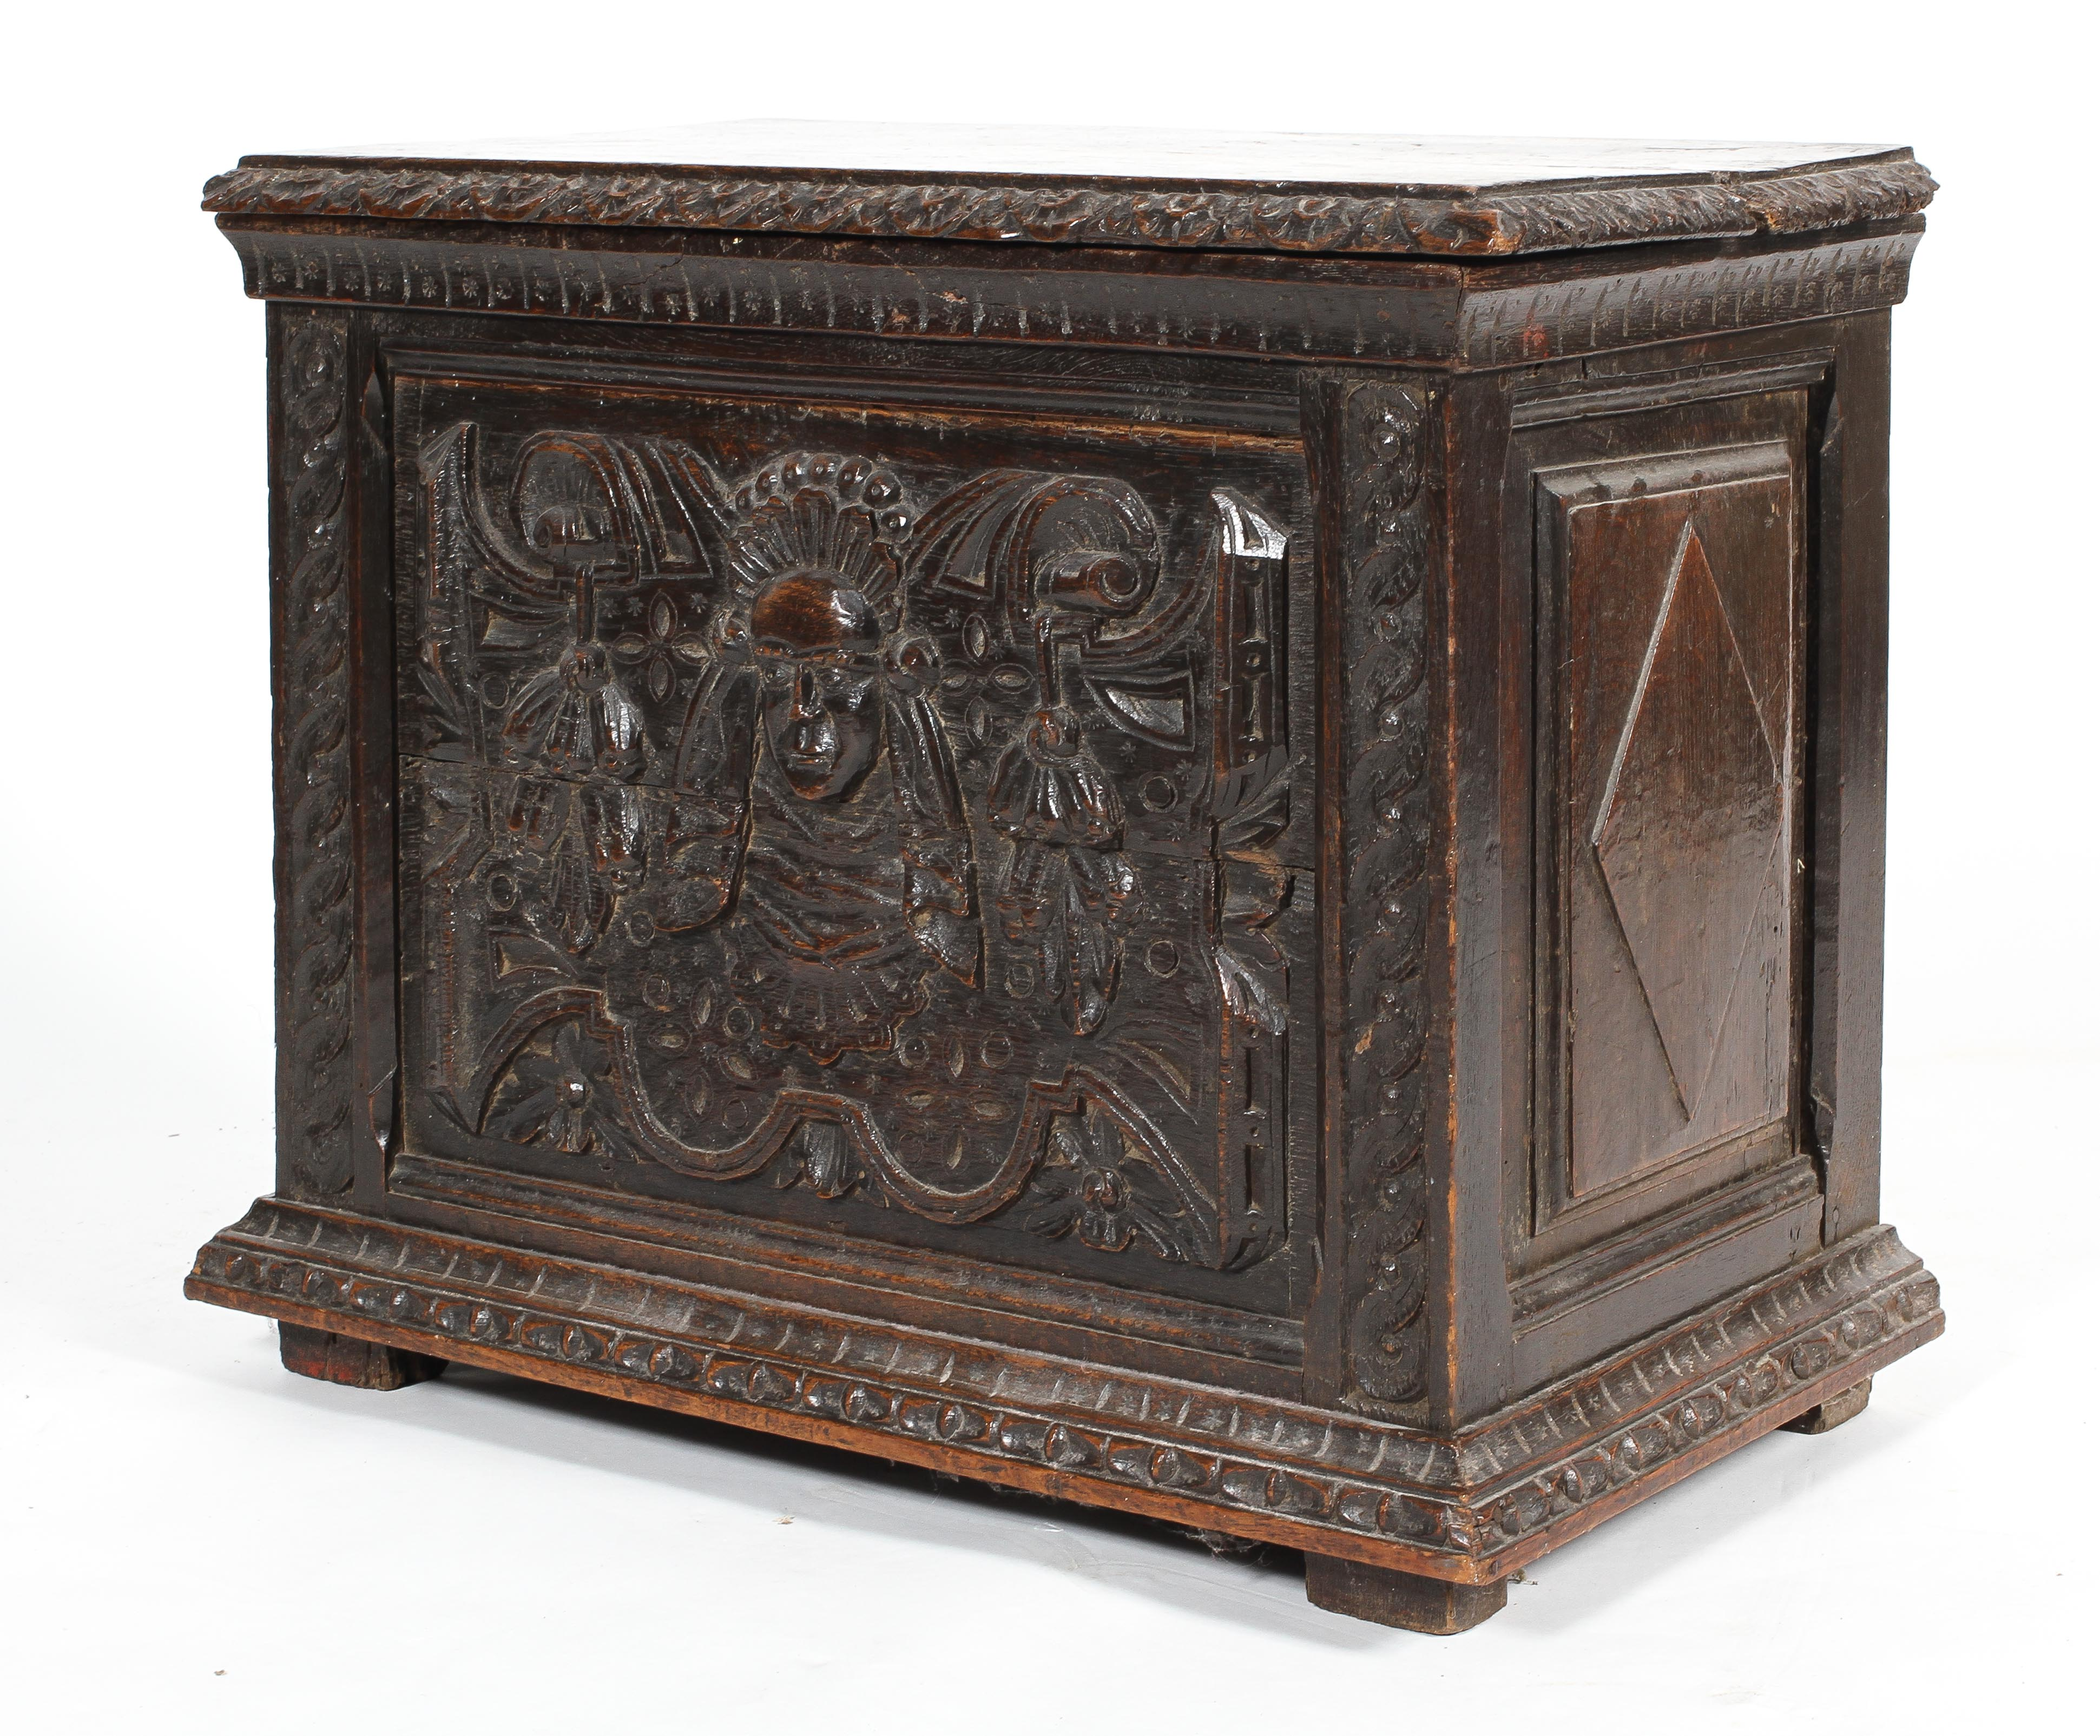 A small oak coffer or box, 17th century or later, with carved foliate rims,